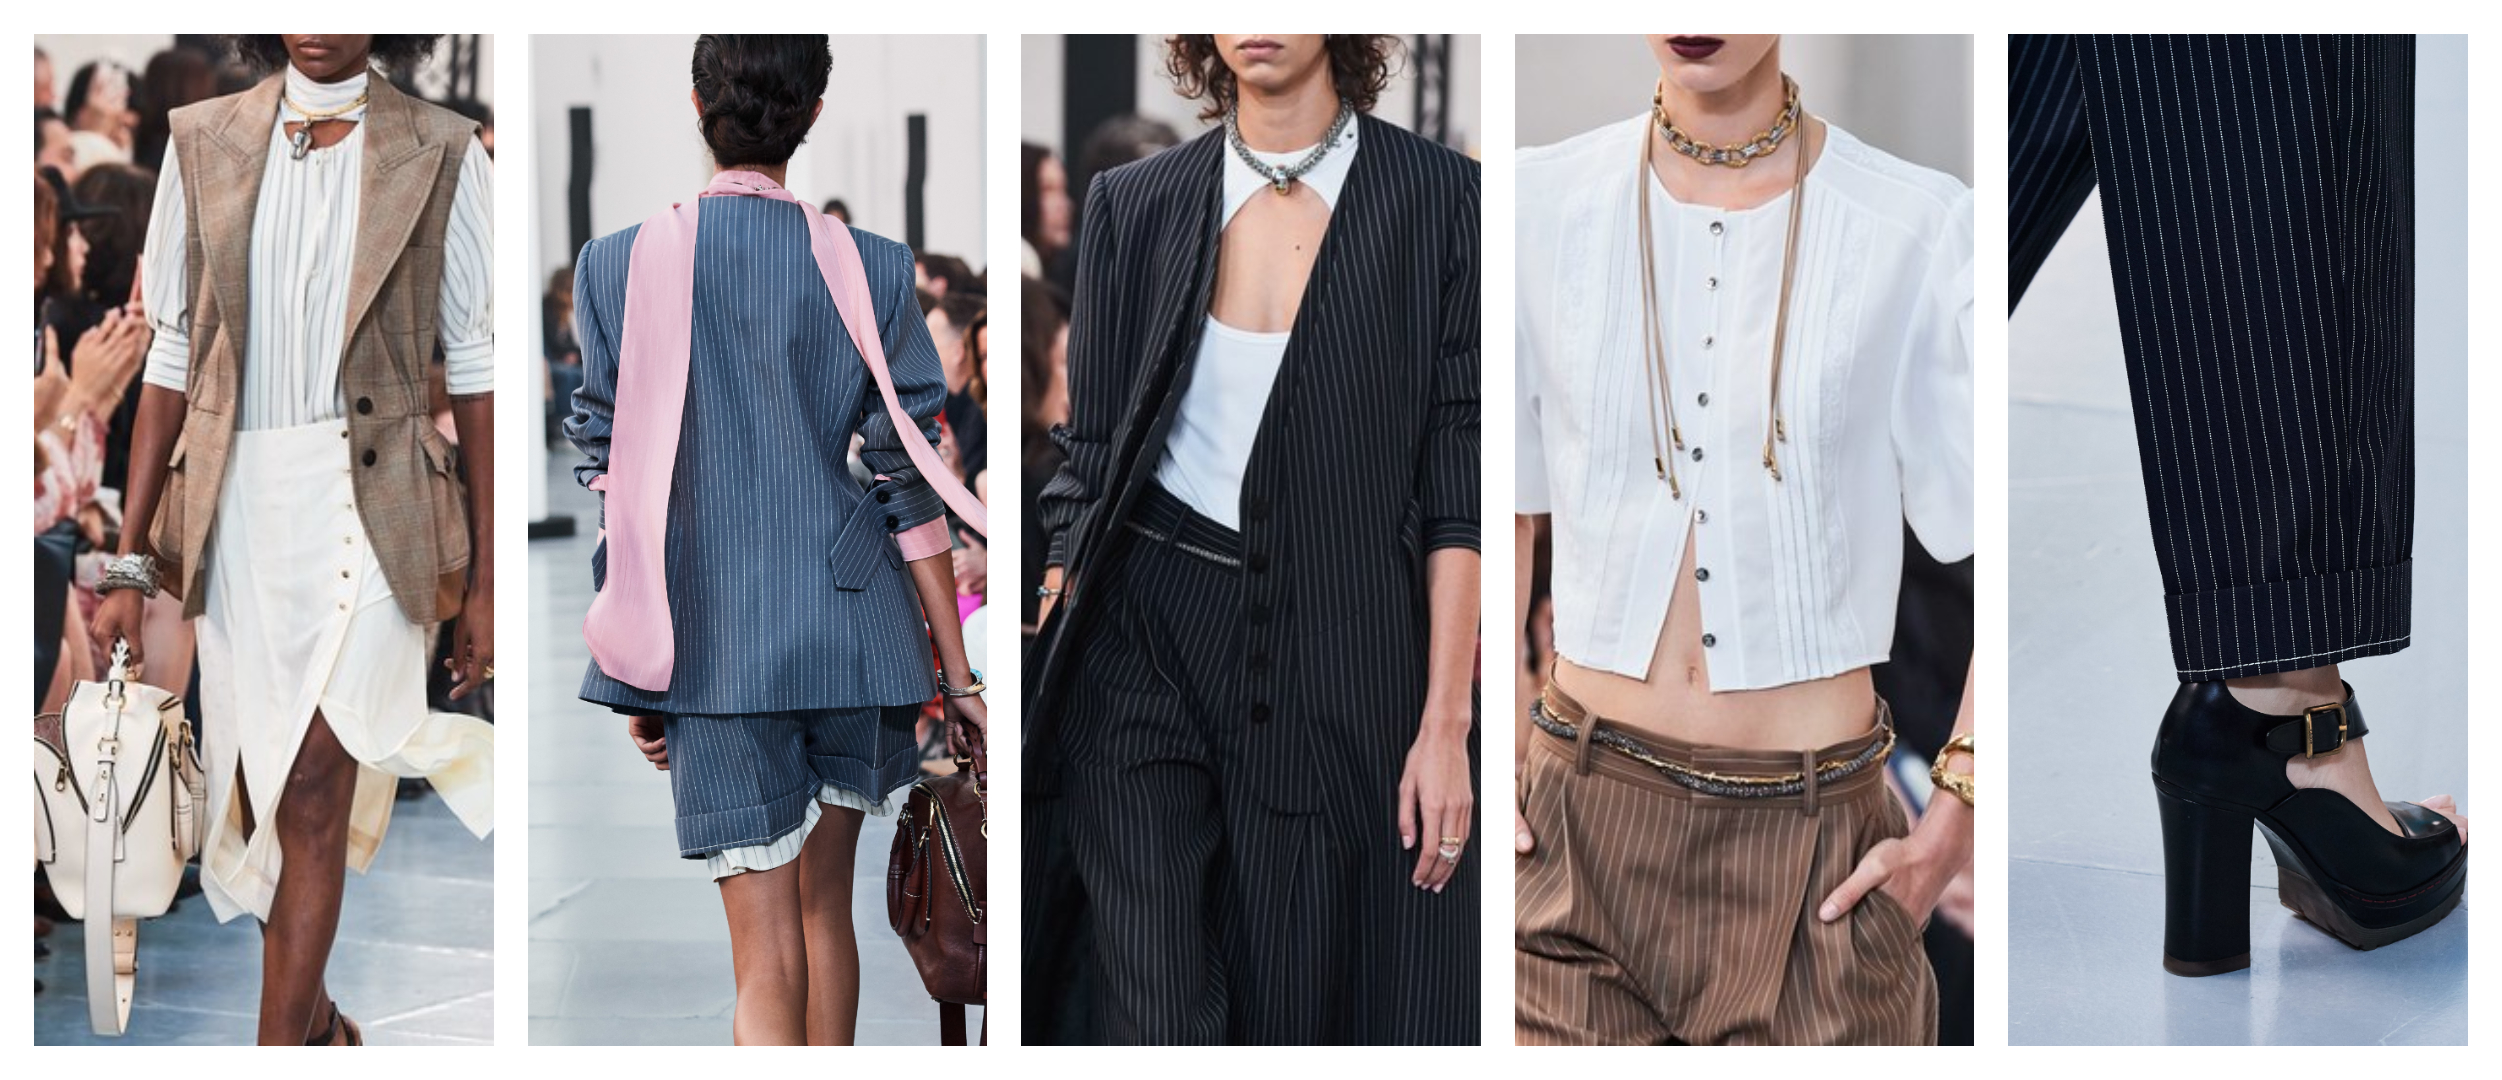 Chloe ss20 details